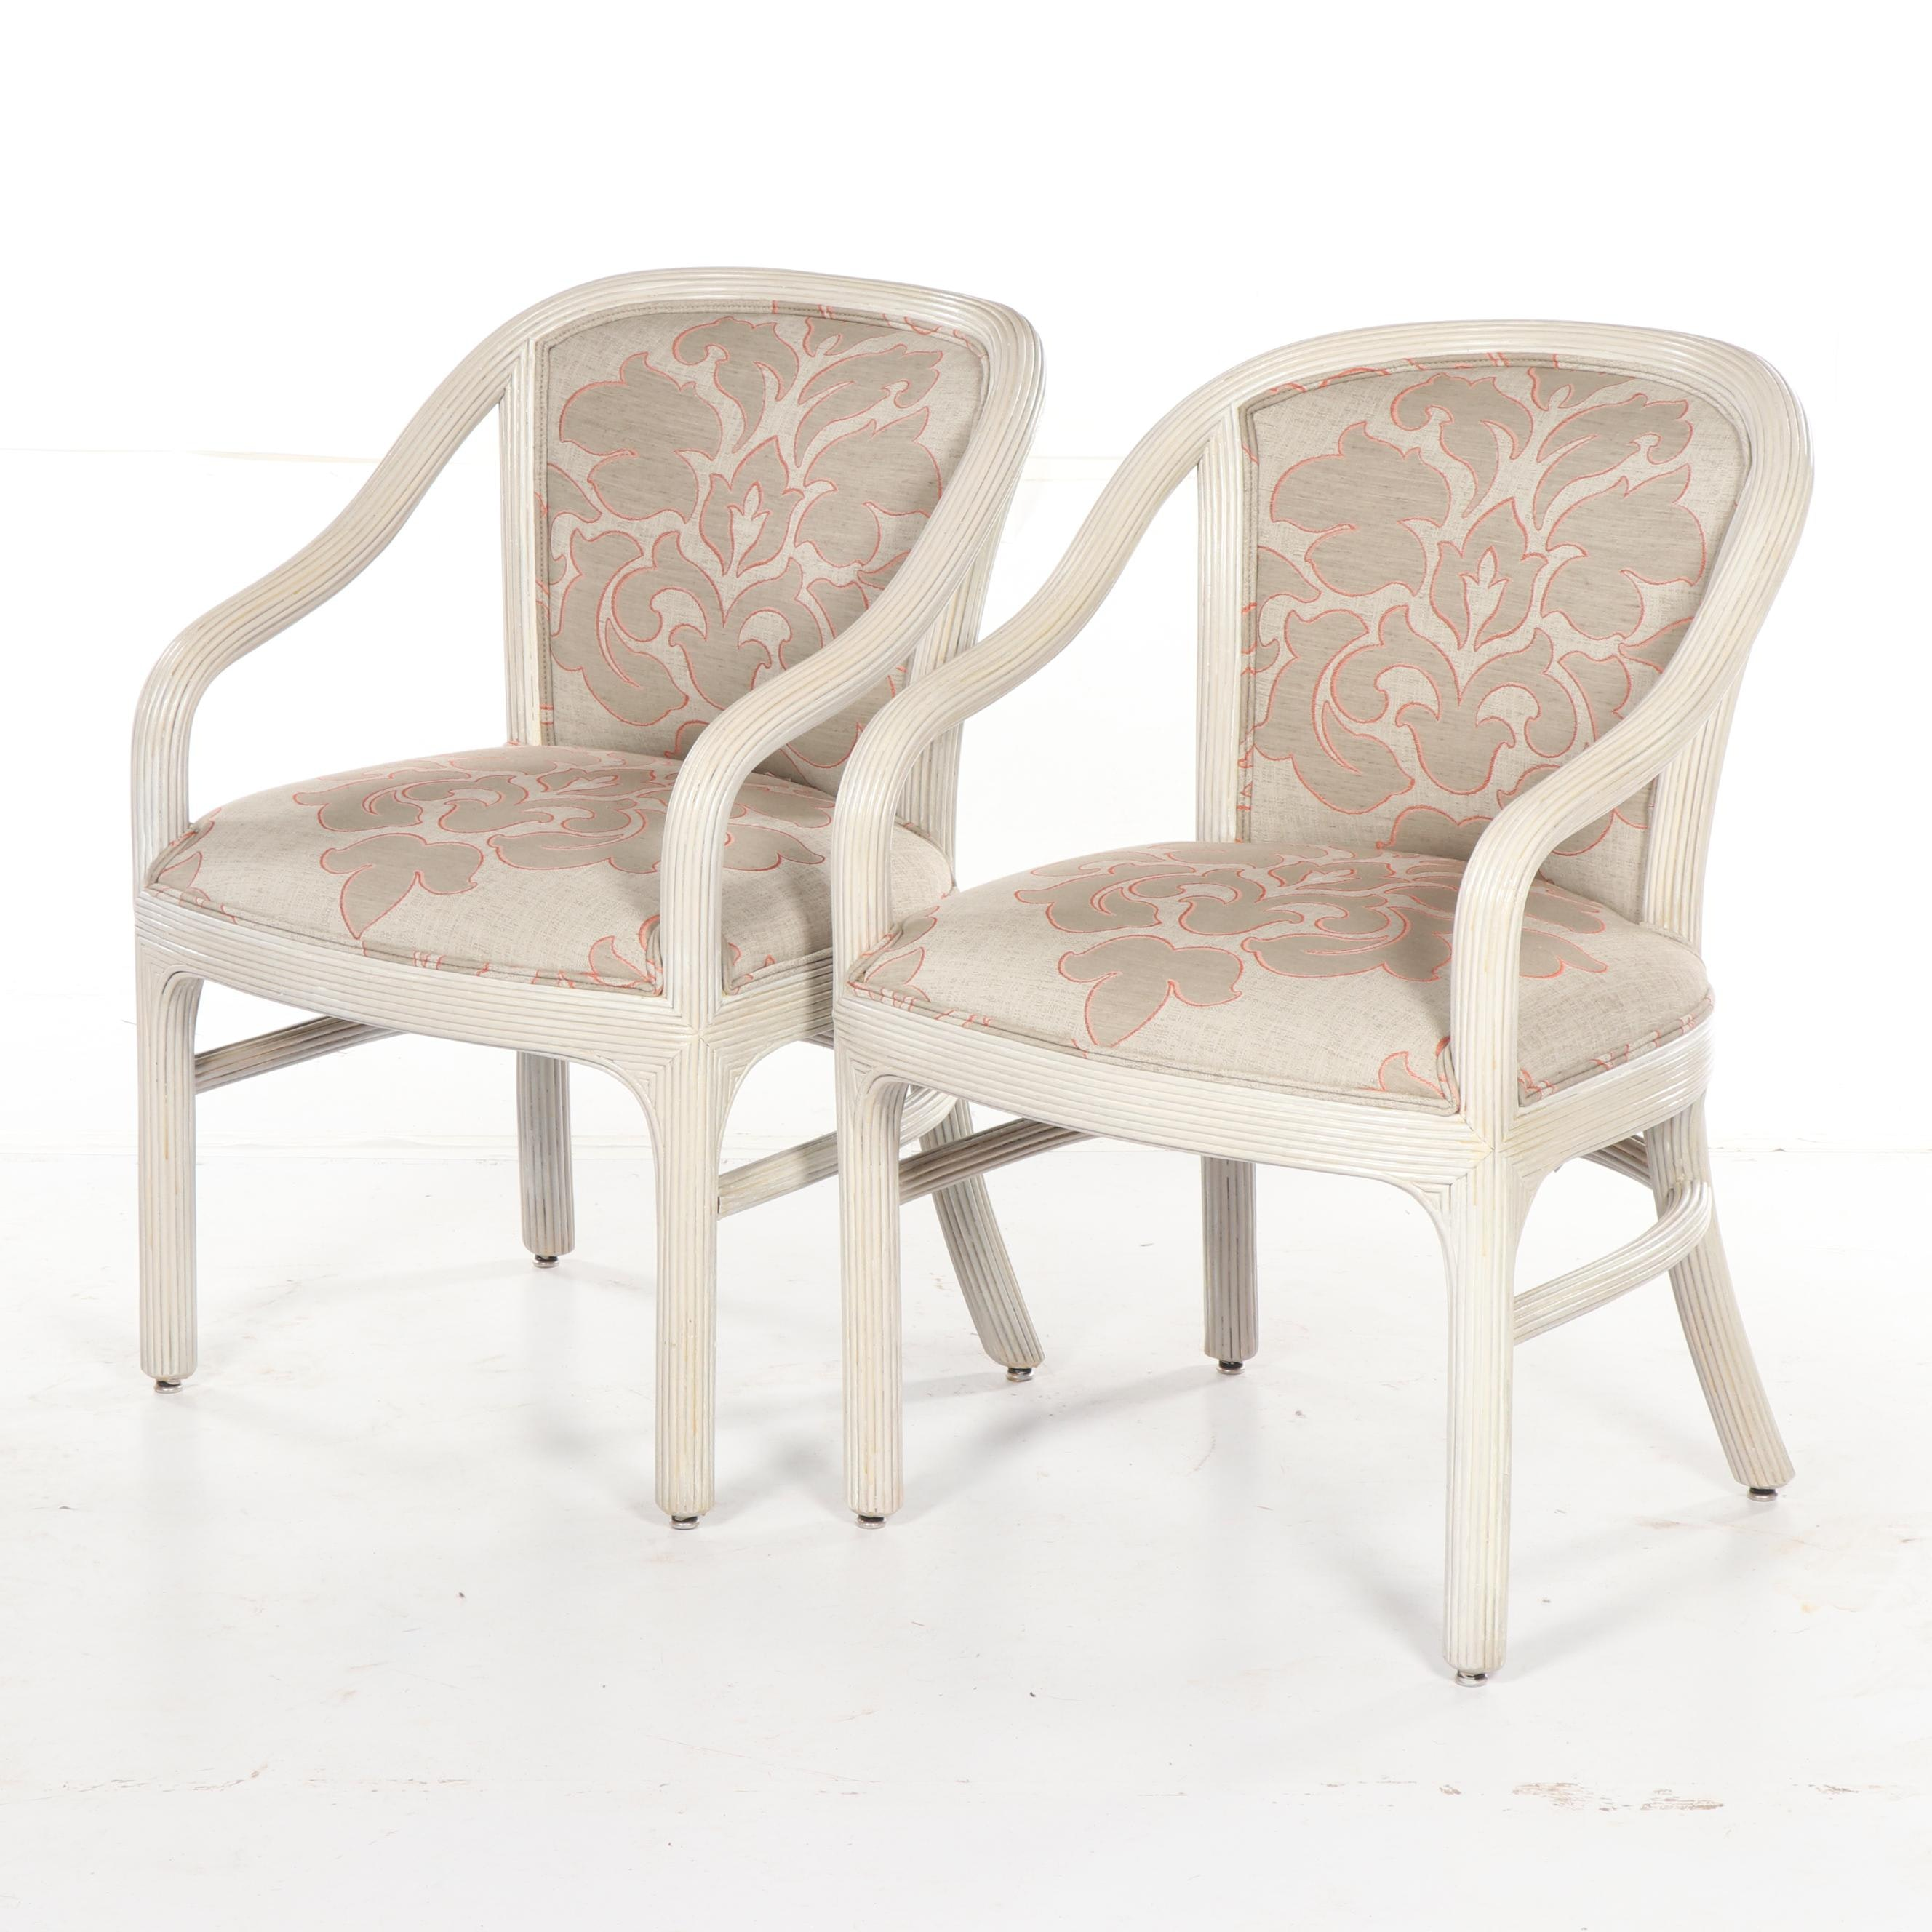 Painted Wood and Upholstered Armchairs by Vogue Rattan, Late 20th Century